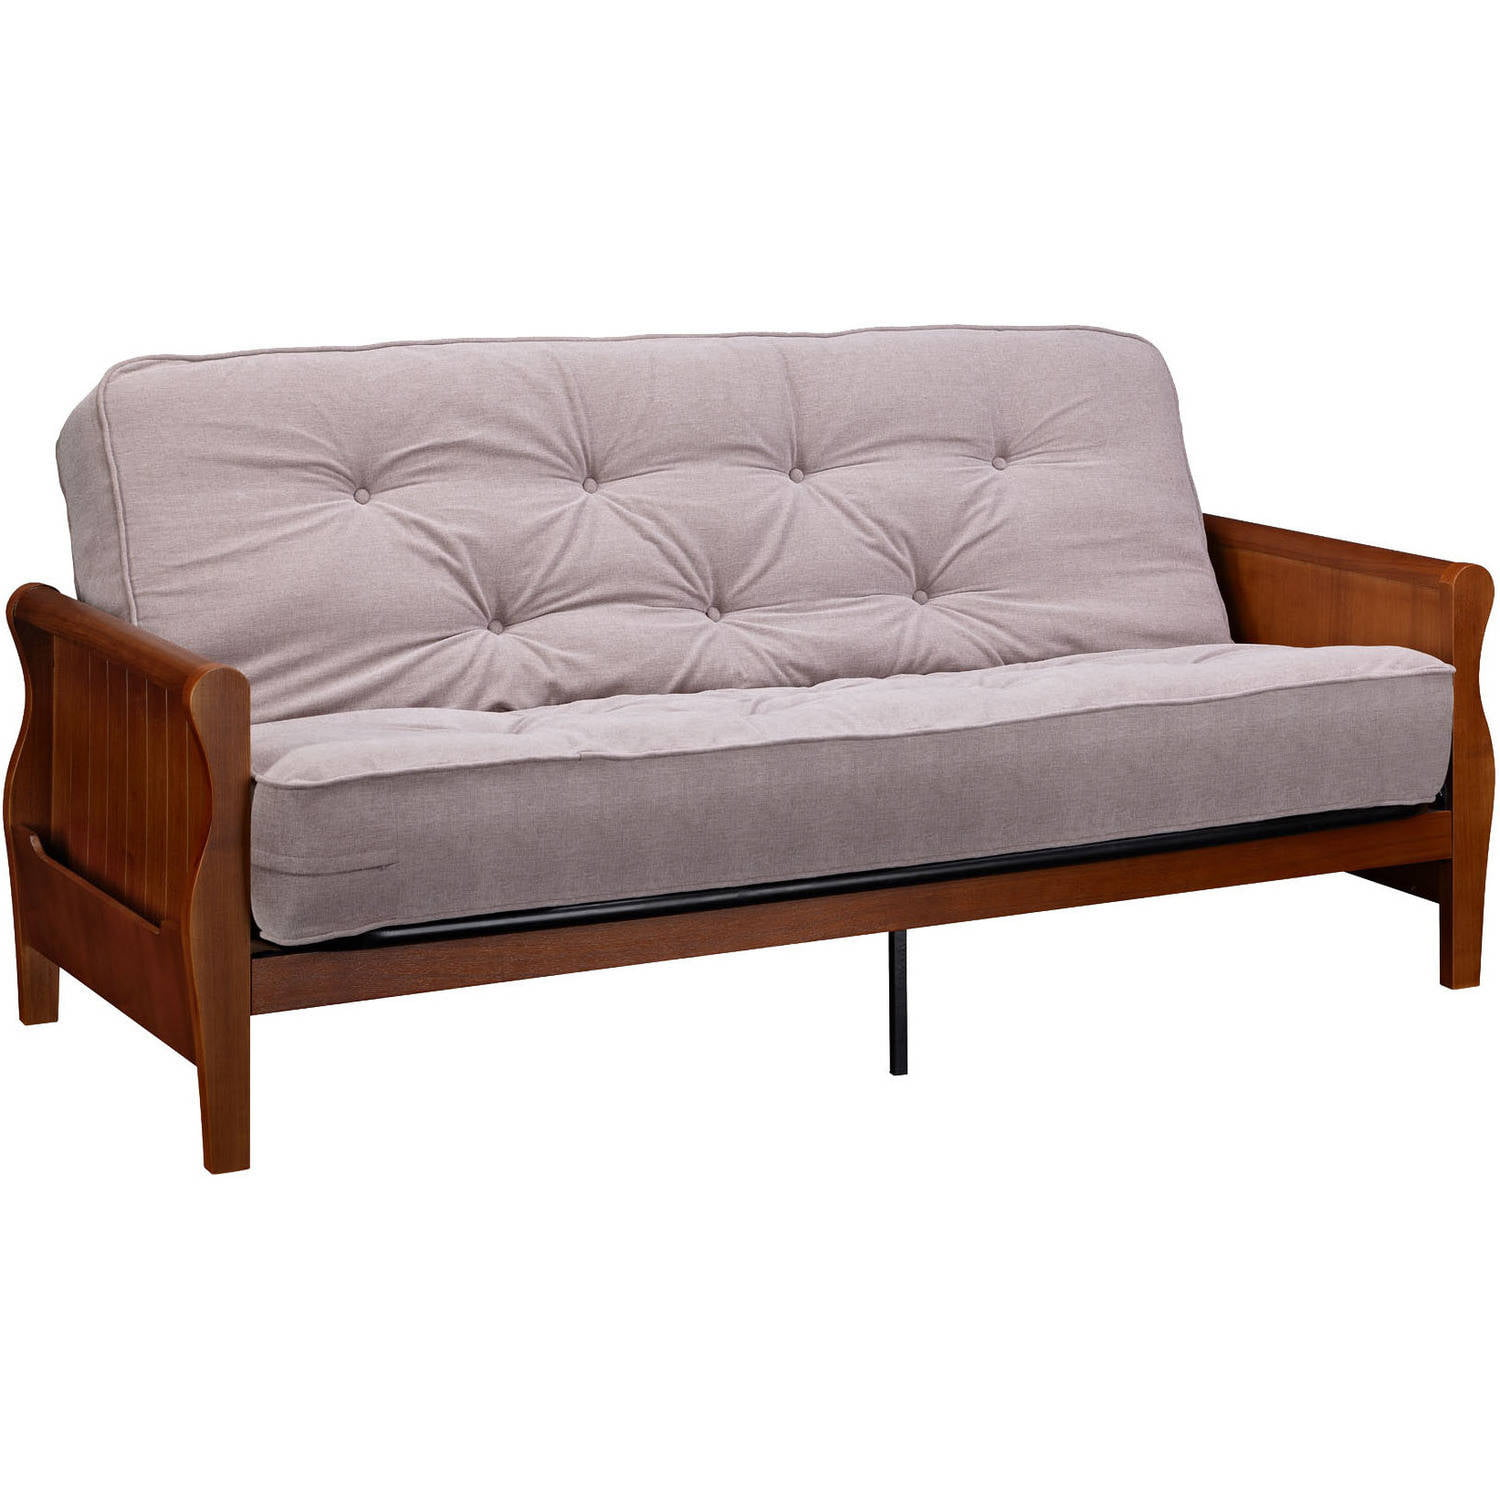 for mattress futons chair futon amazing design